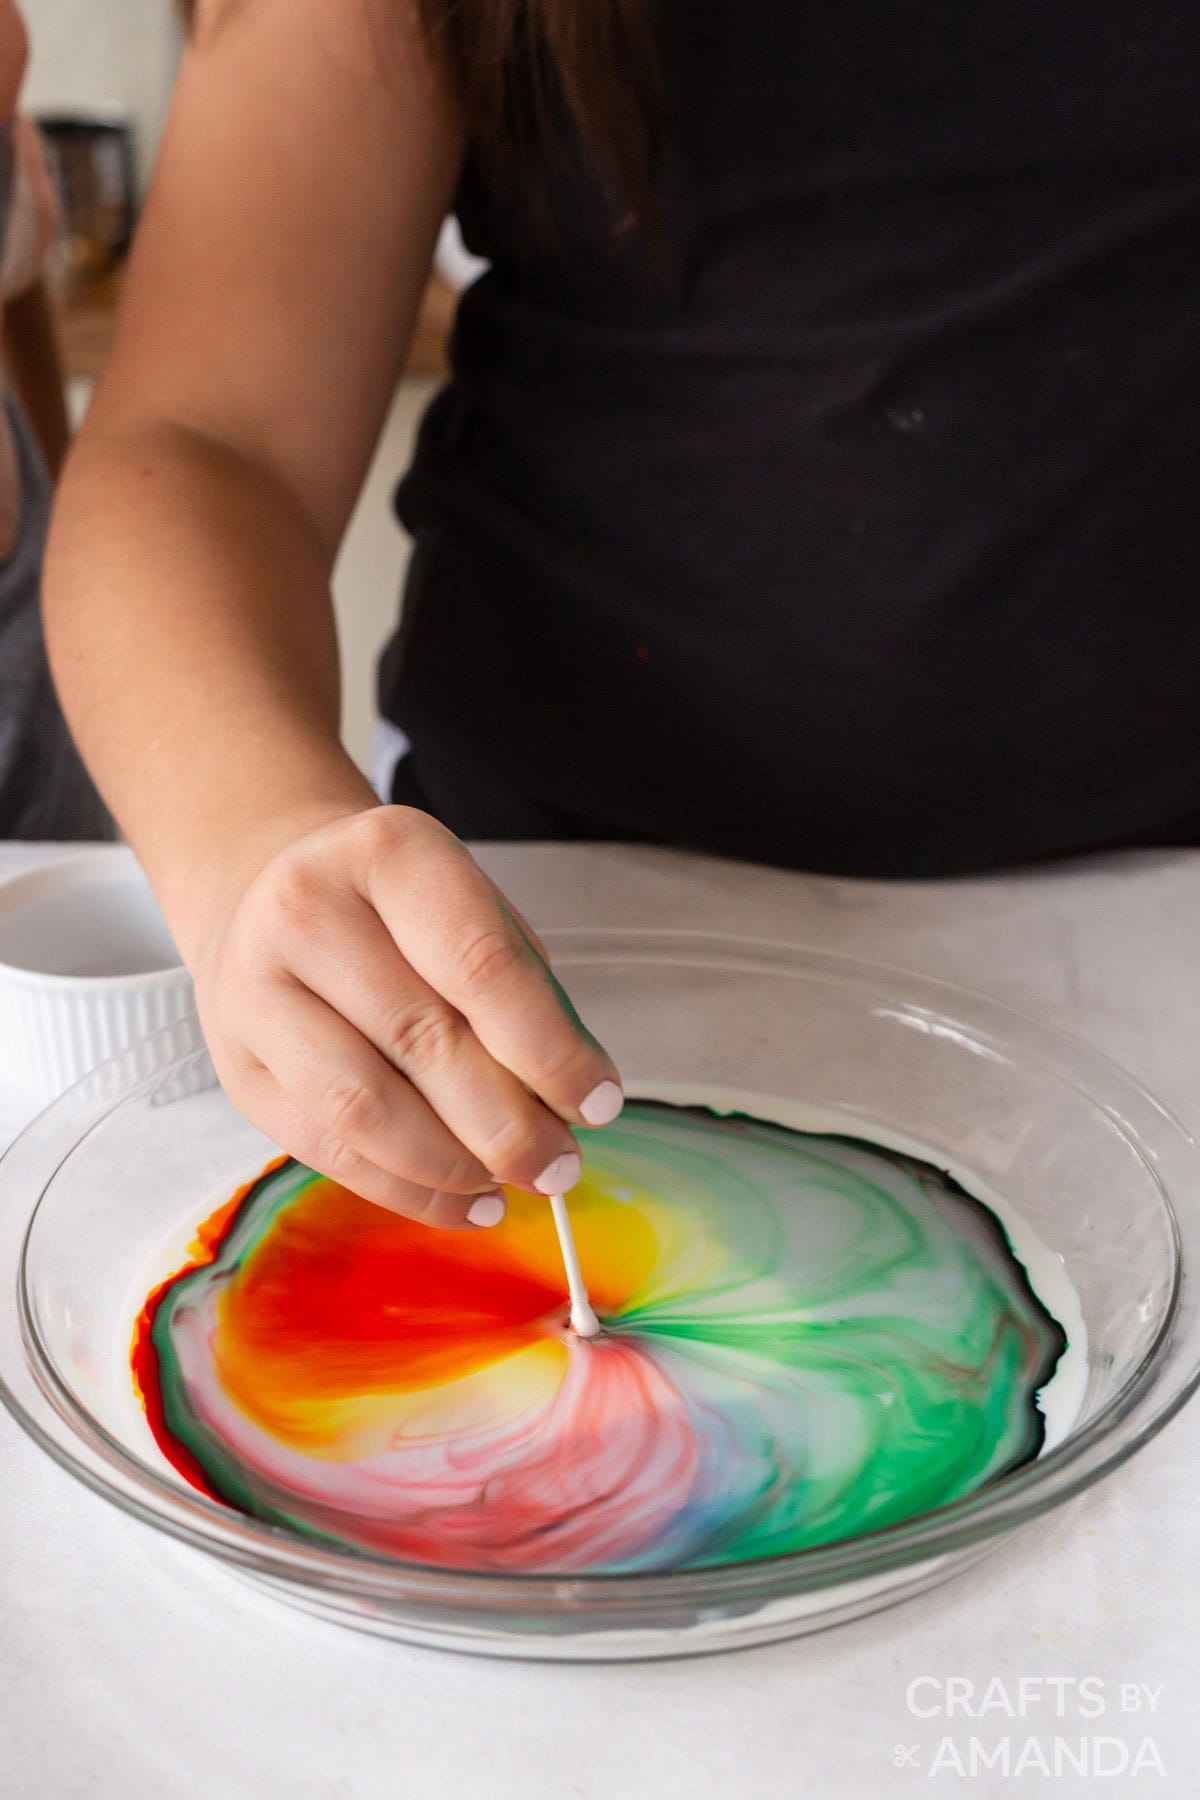 girl putting a q-tip into dish with milk and food coloring